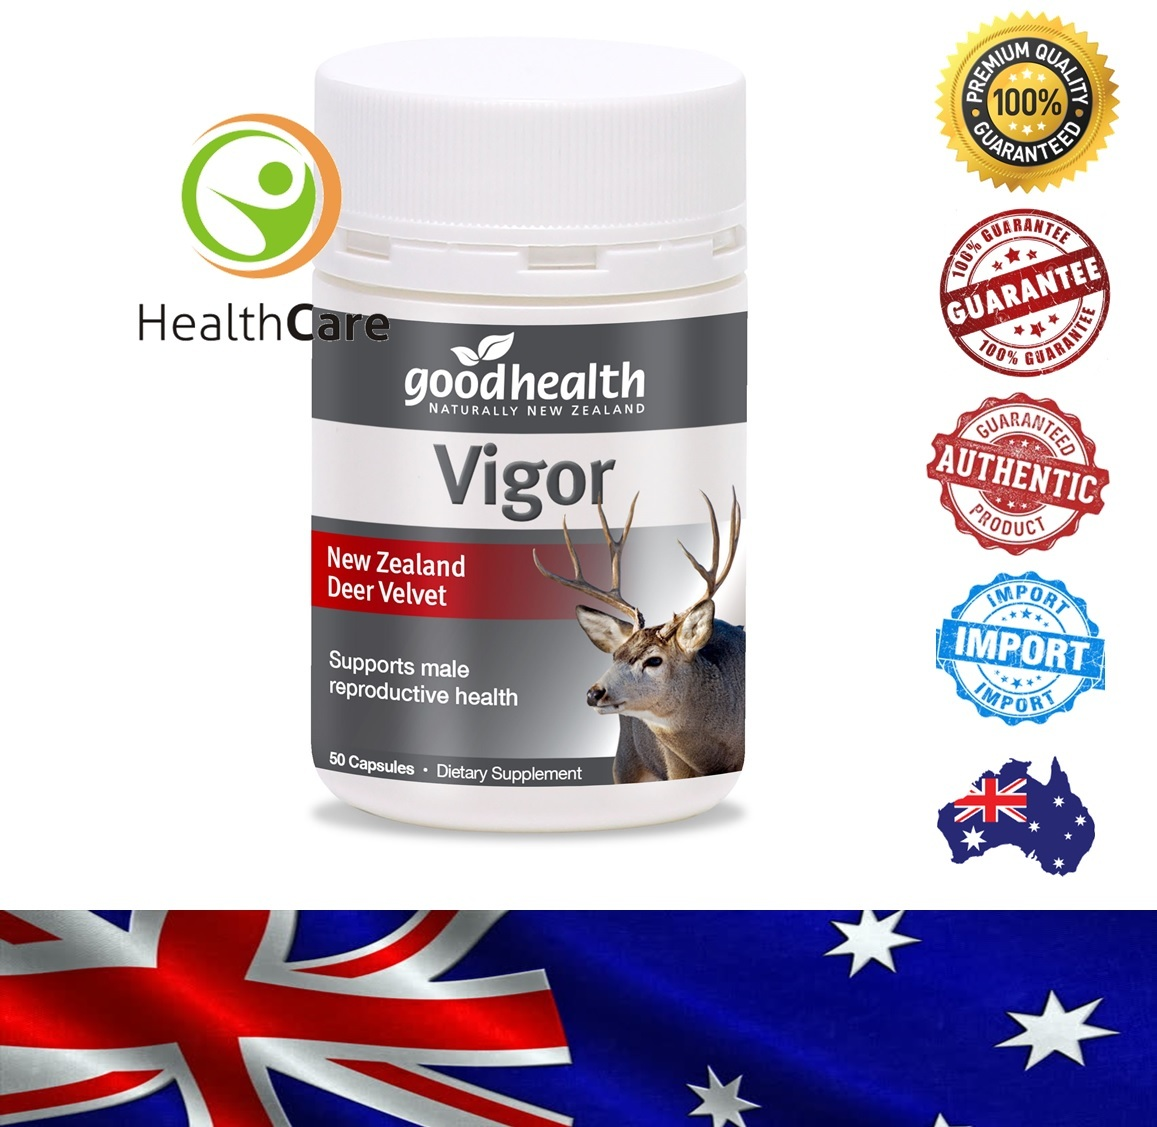 【Ready Stock】Good Health Vigor Deer Velvet  鹿茸精胶囊 (50 Capsules / 胶囊)